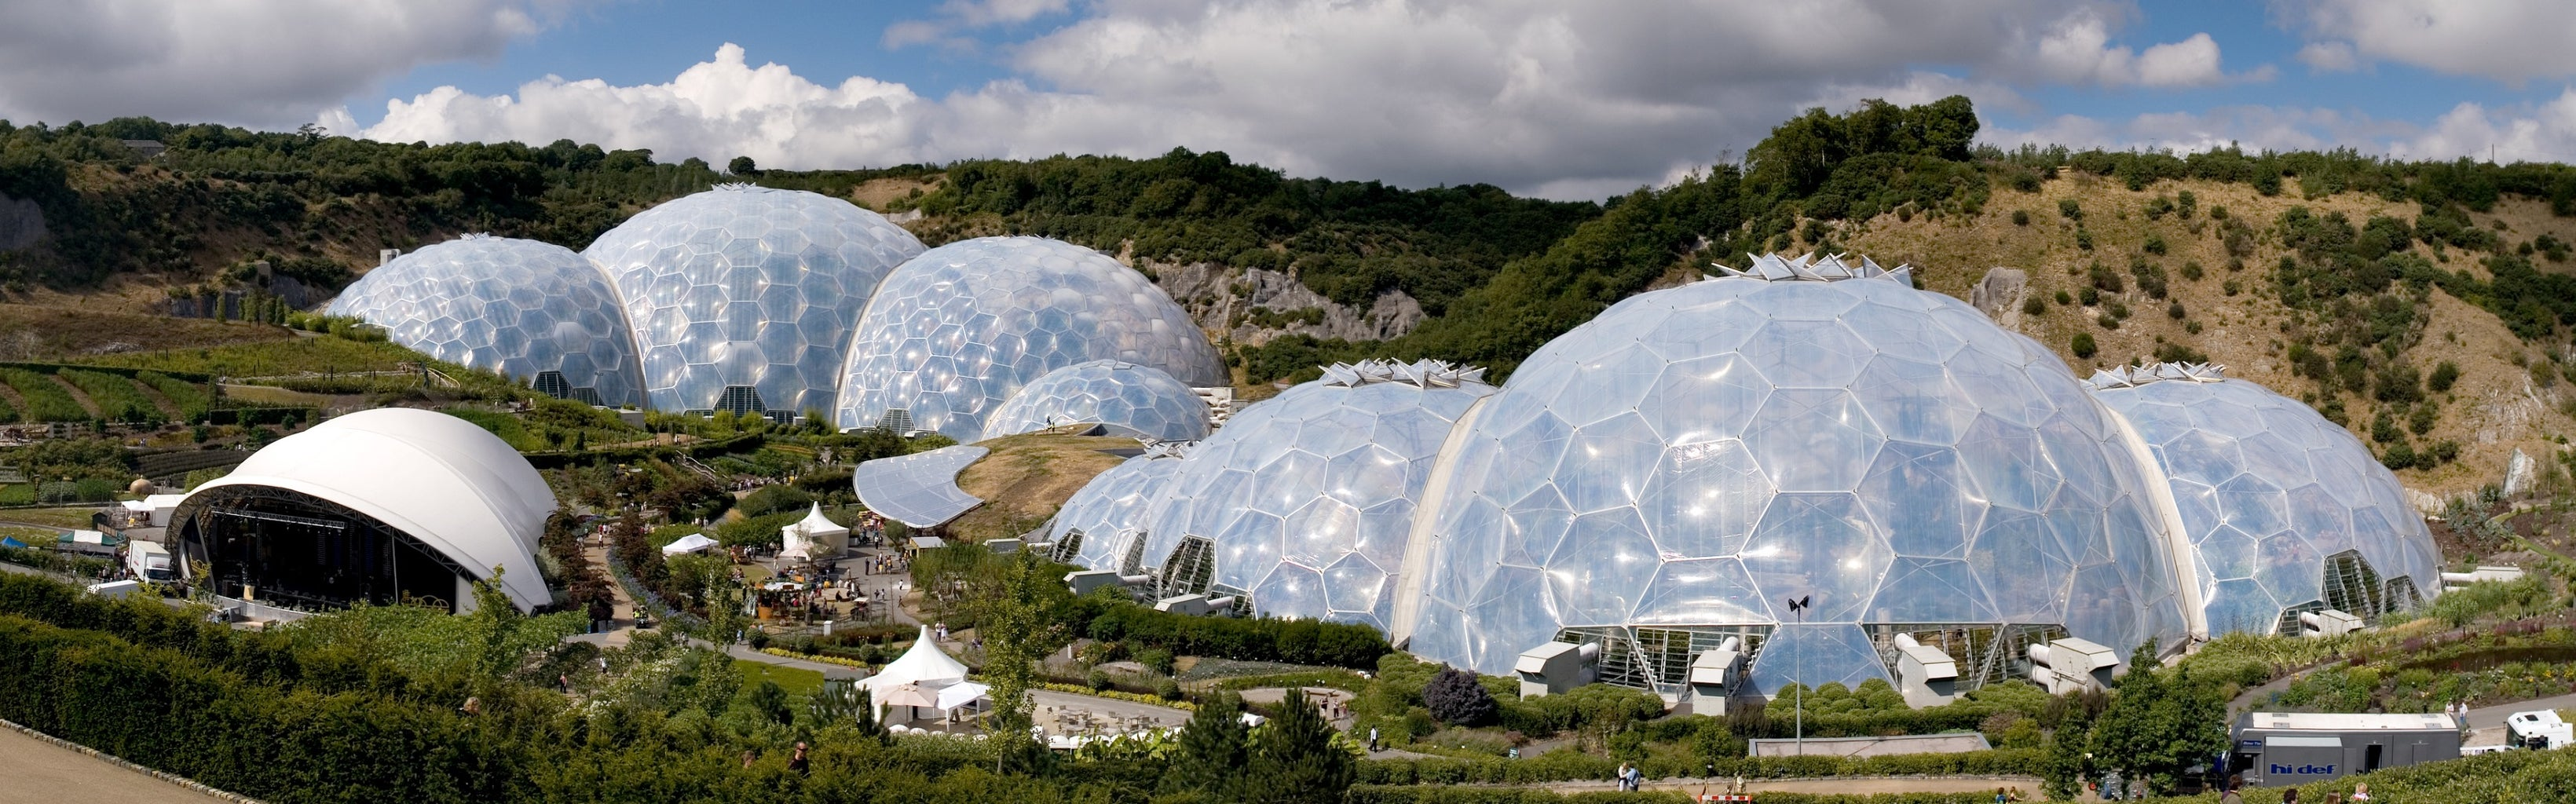 What Is a Geodesic Dome (geodome)?